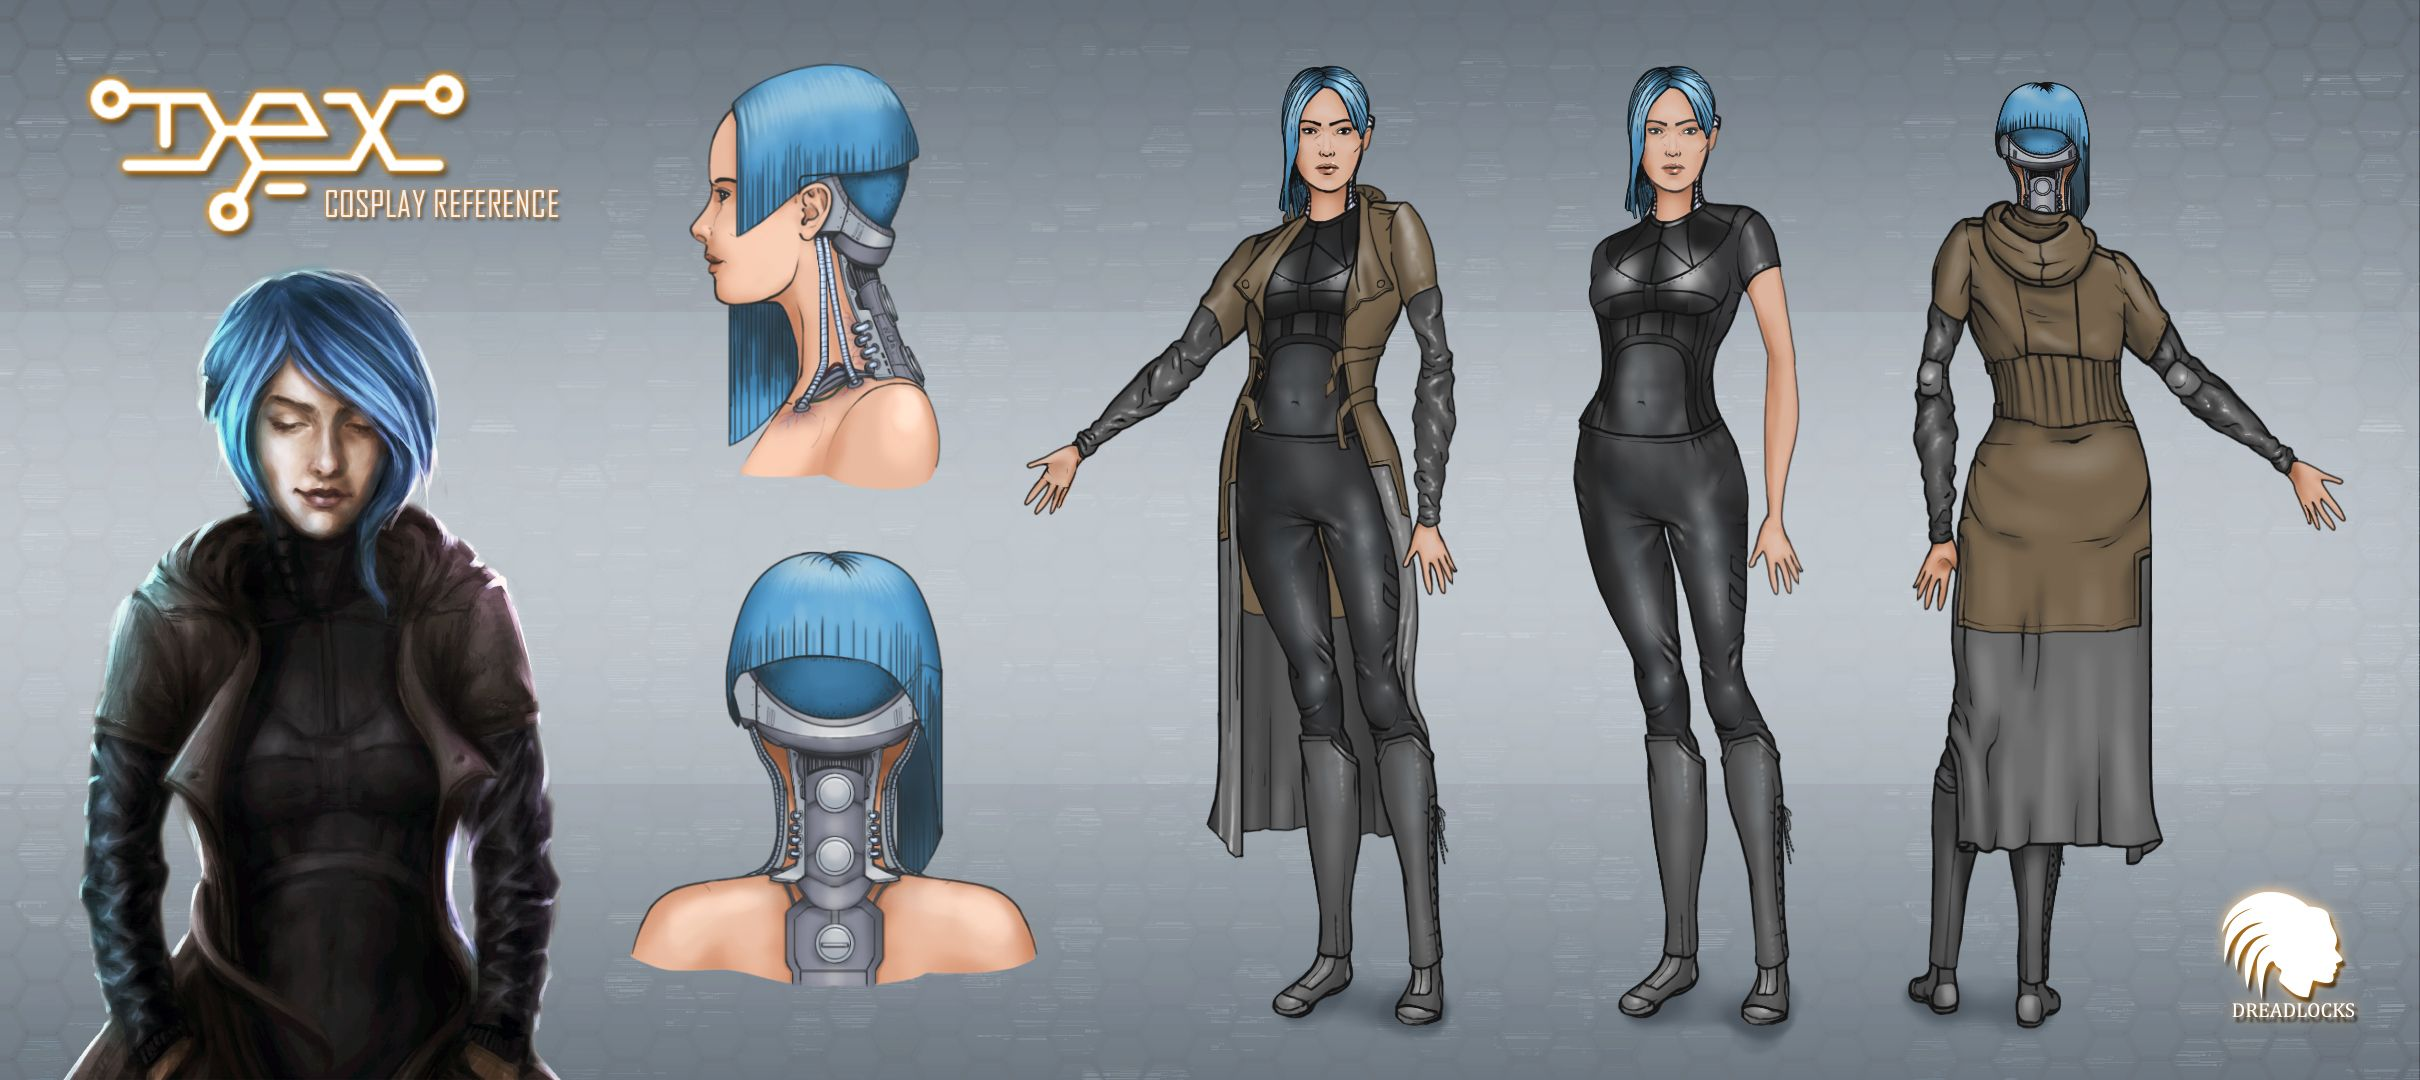 Cosplay reference distributed to fans who want to dress up as Dex. Dex - 2D cyberpunk indie RPG game - www.dex-rpg.com